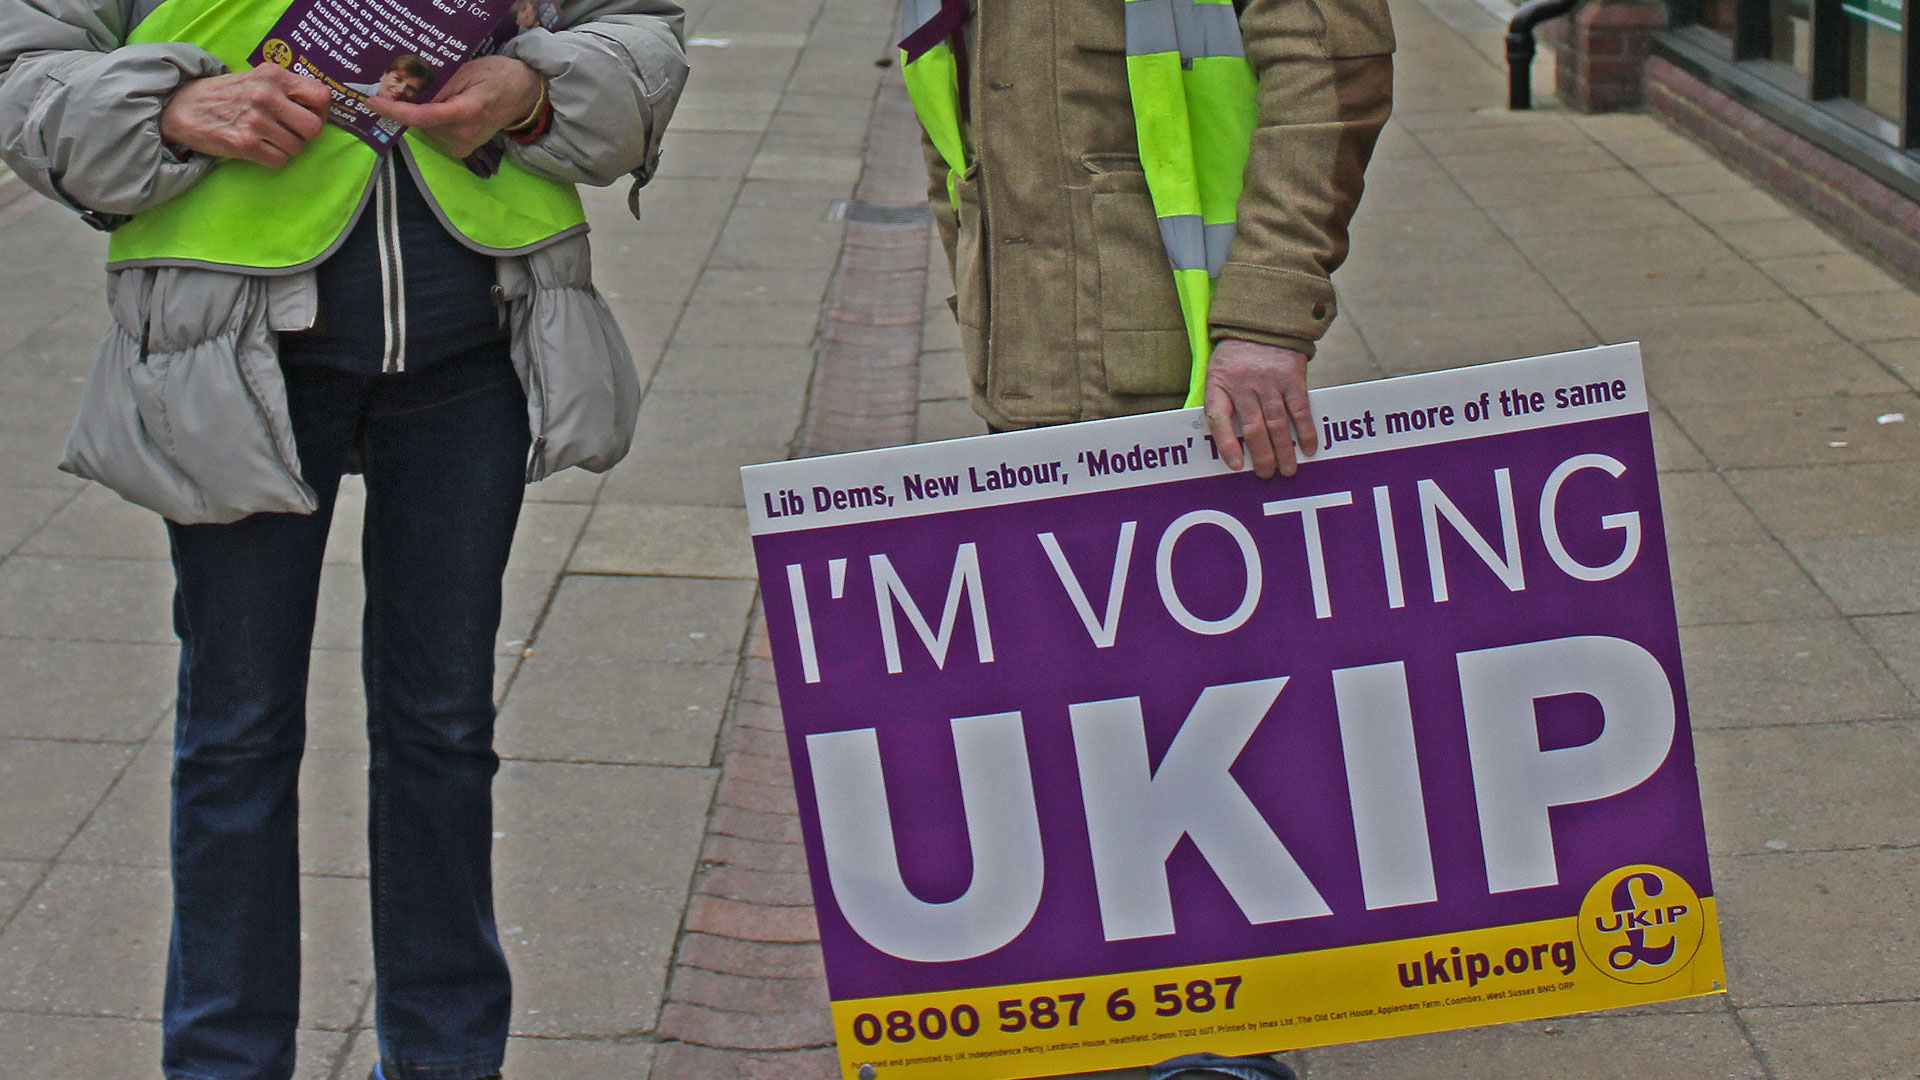 Ukip supporters with an 'I'm voting Ukip sign' canvassing voters during the 2015 UK general election.